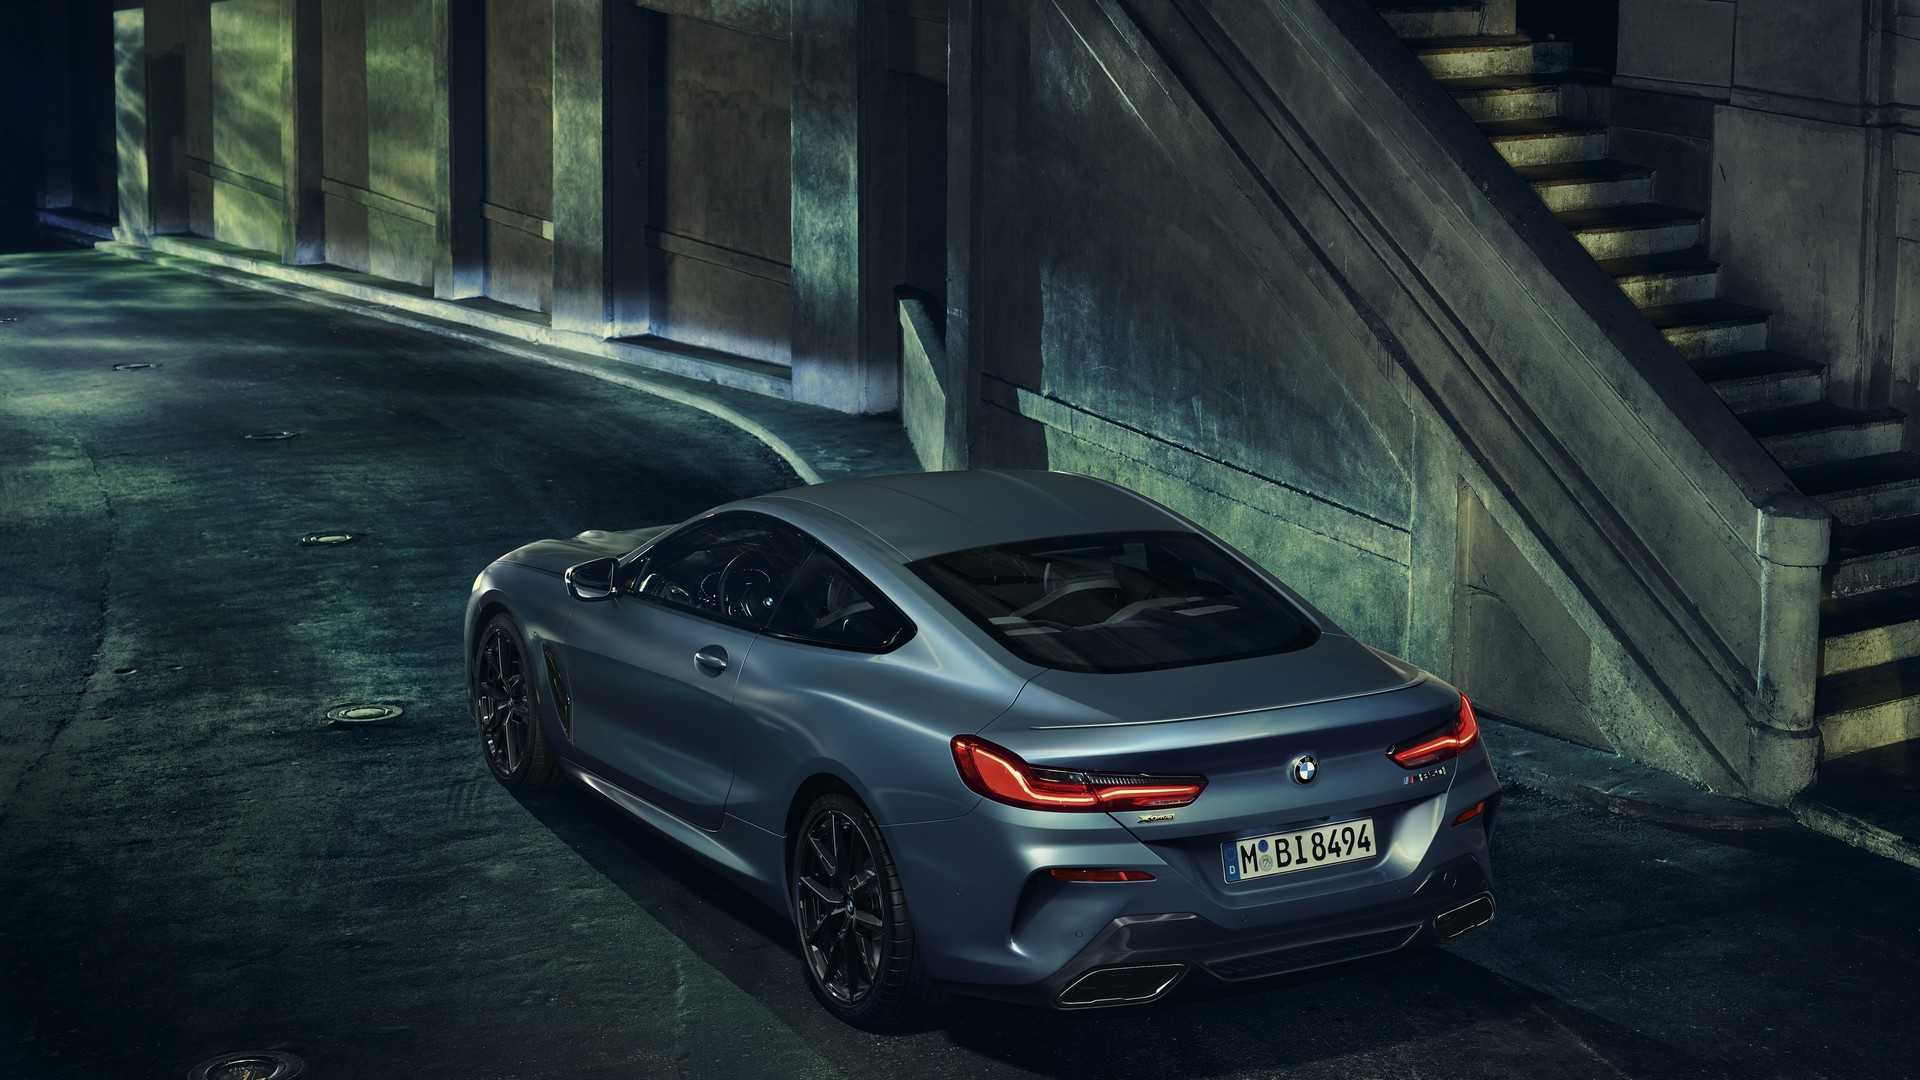 2019-bmw-m850i-xdrive-coupe-first-edition